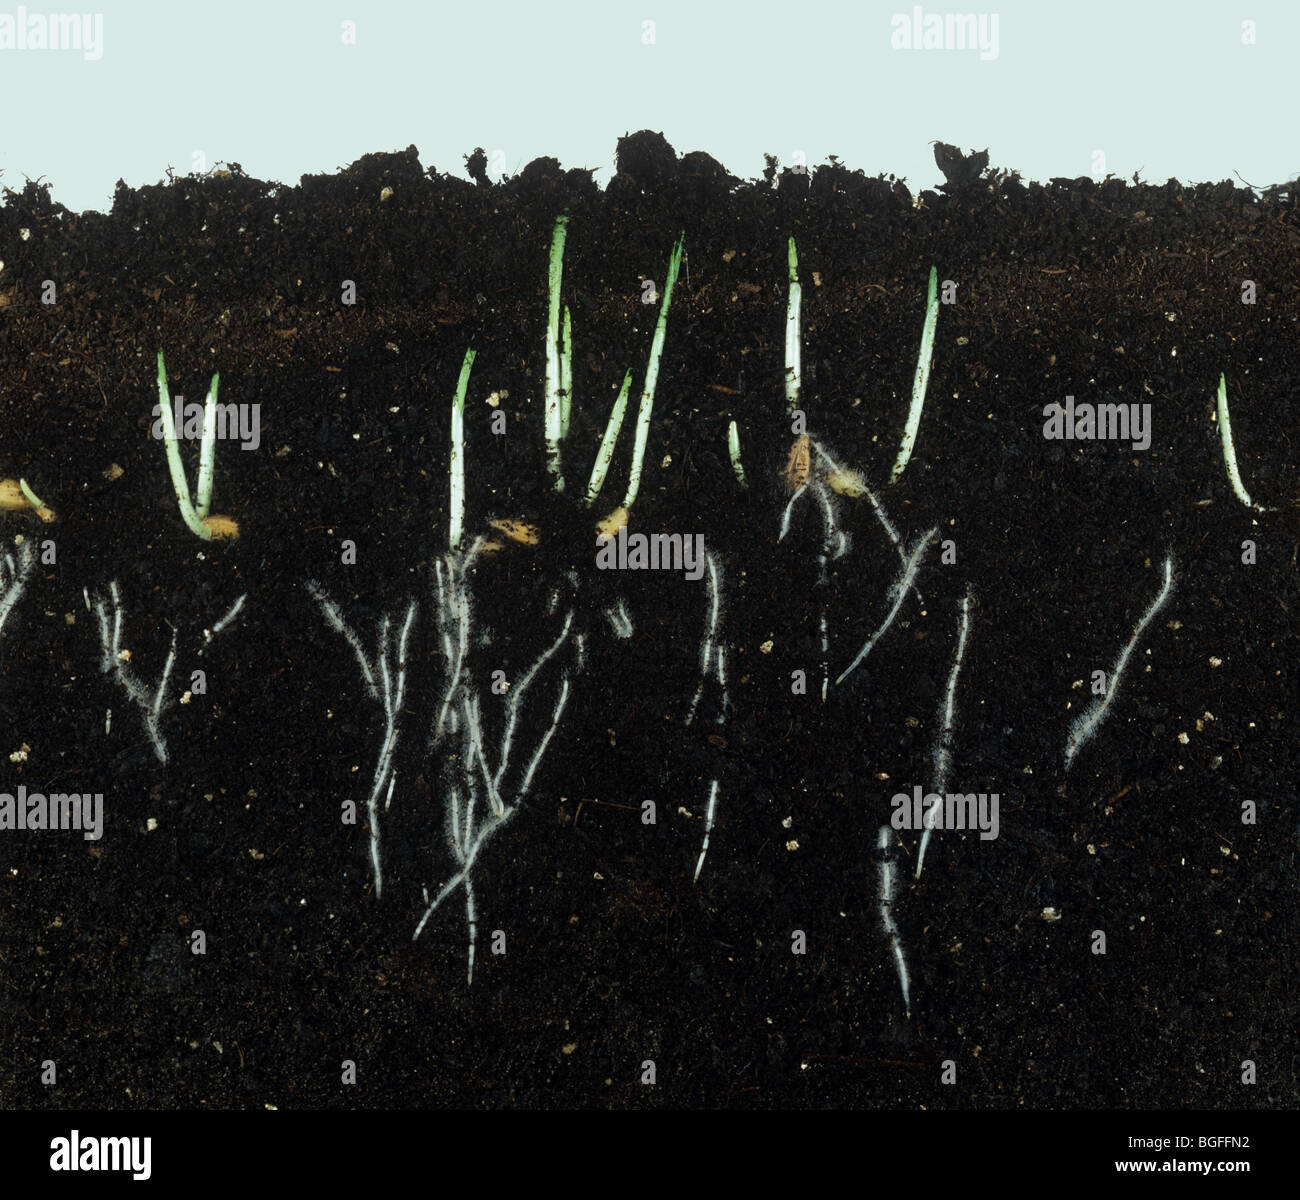 Germinating barley seeds showing young shoots and root development - Stock Image